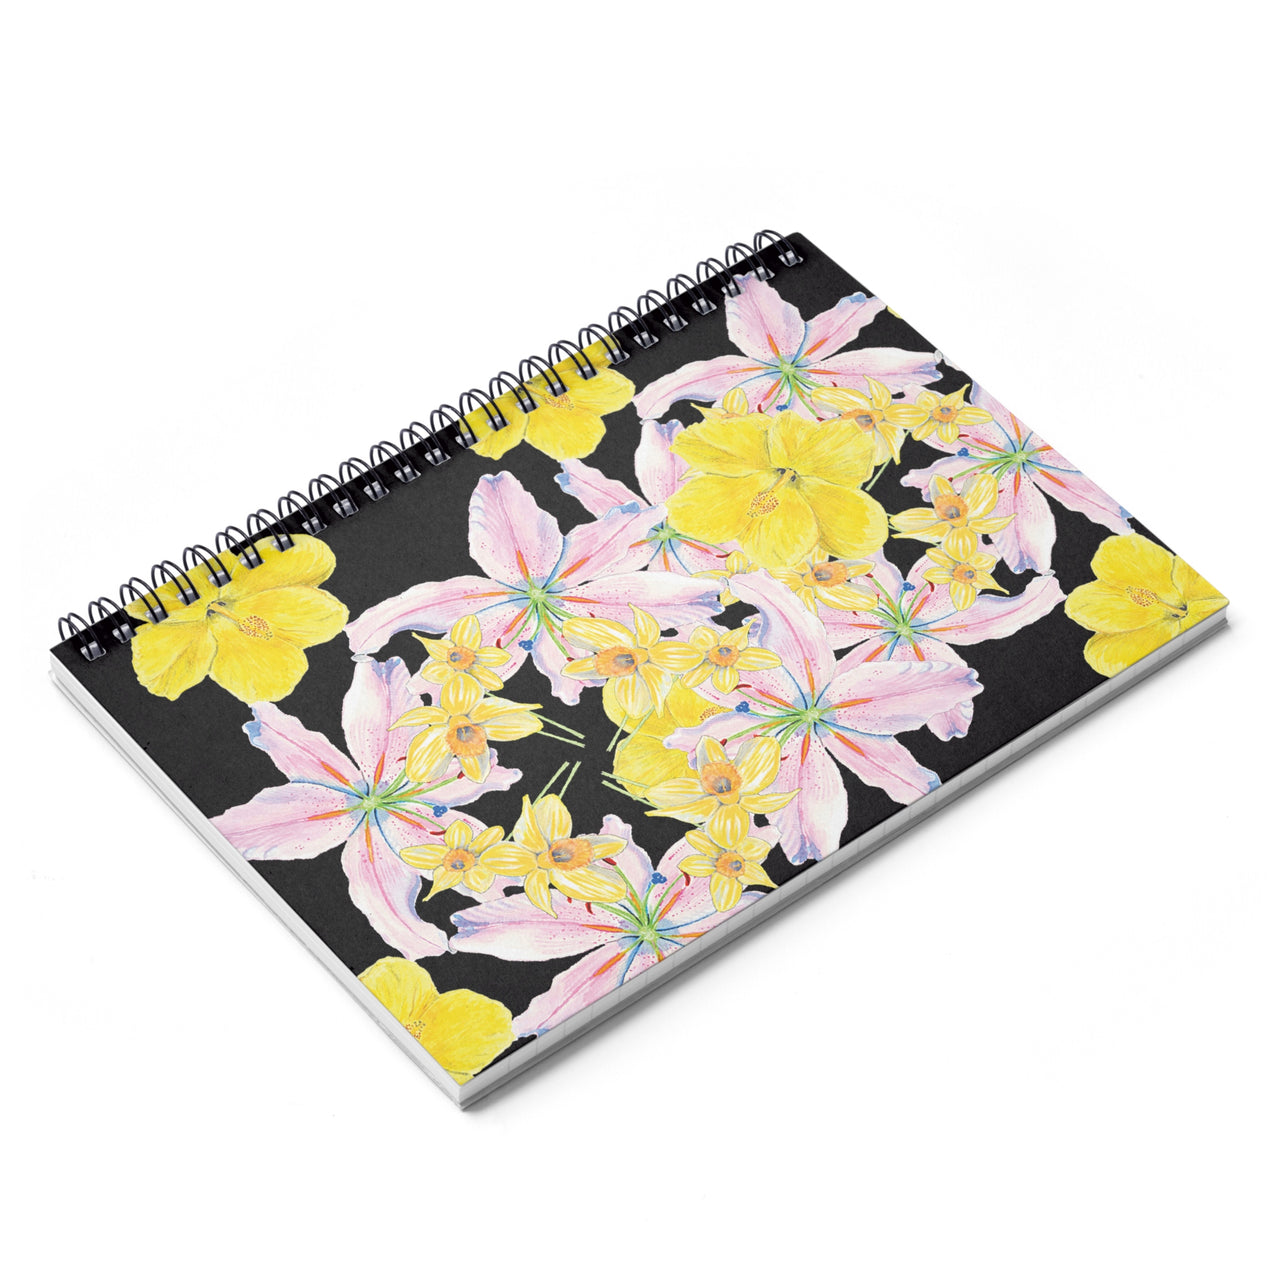 Journal - Pink and Yellow Flower Pattern Spiral Notebook - Ruled Line - Falling Leaf Card Co.